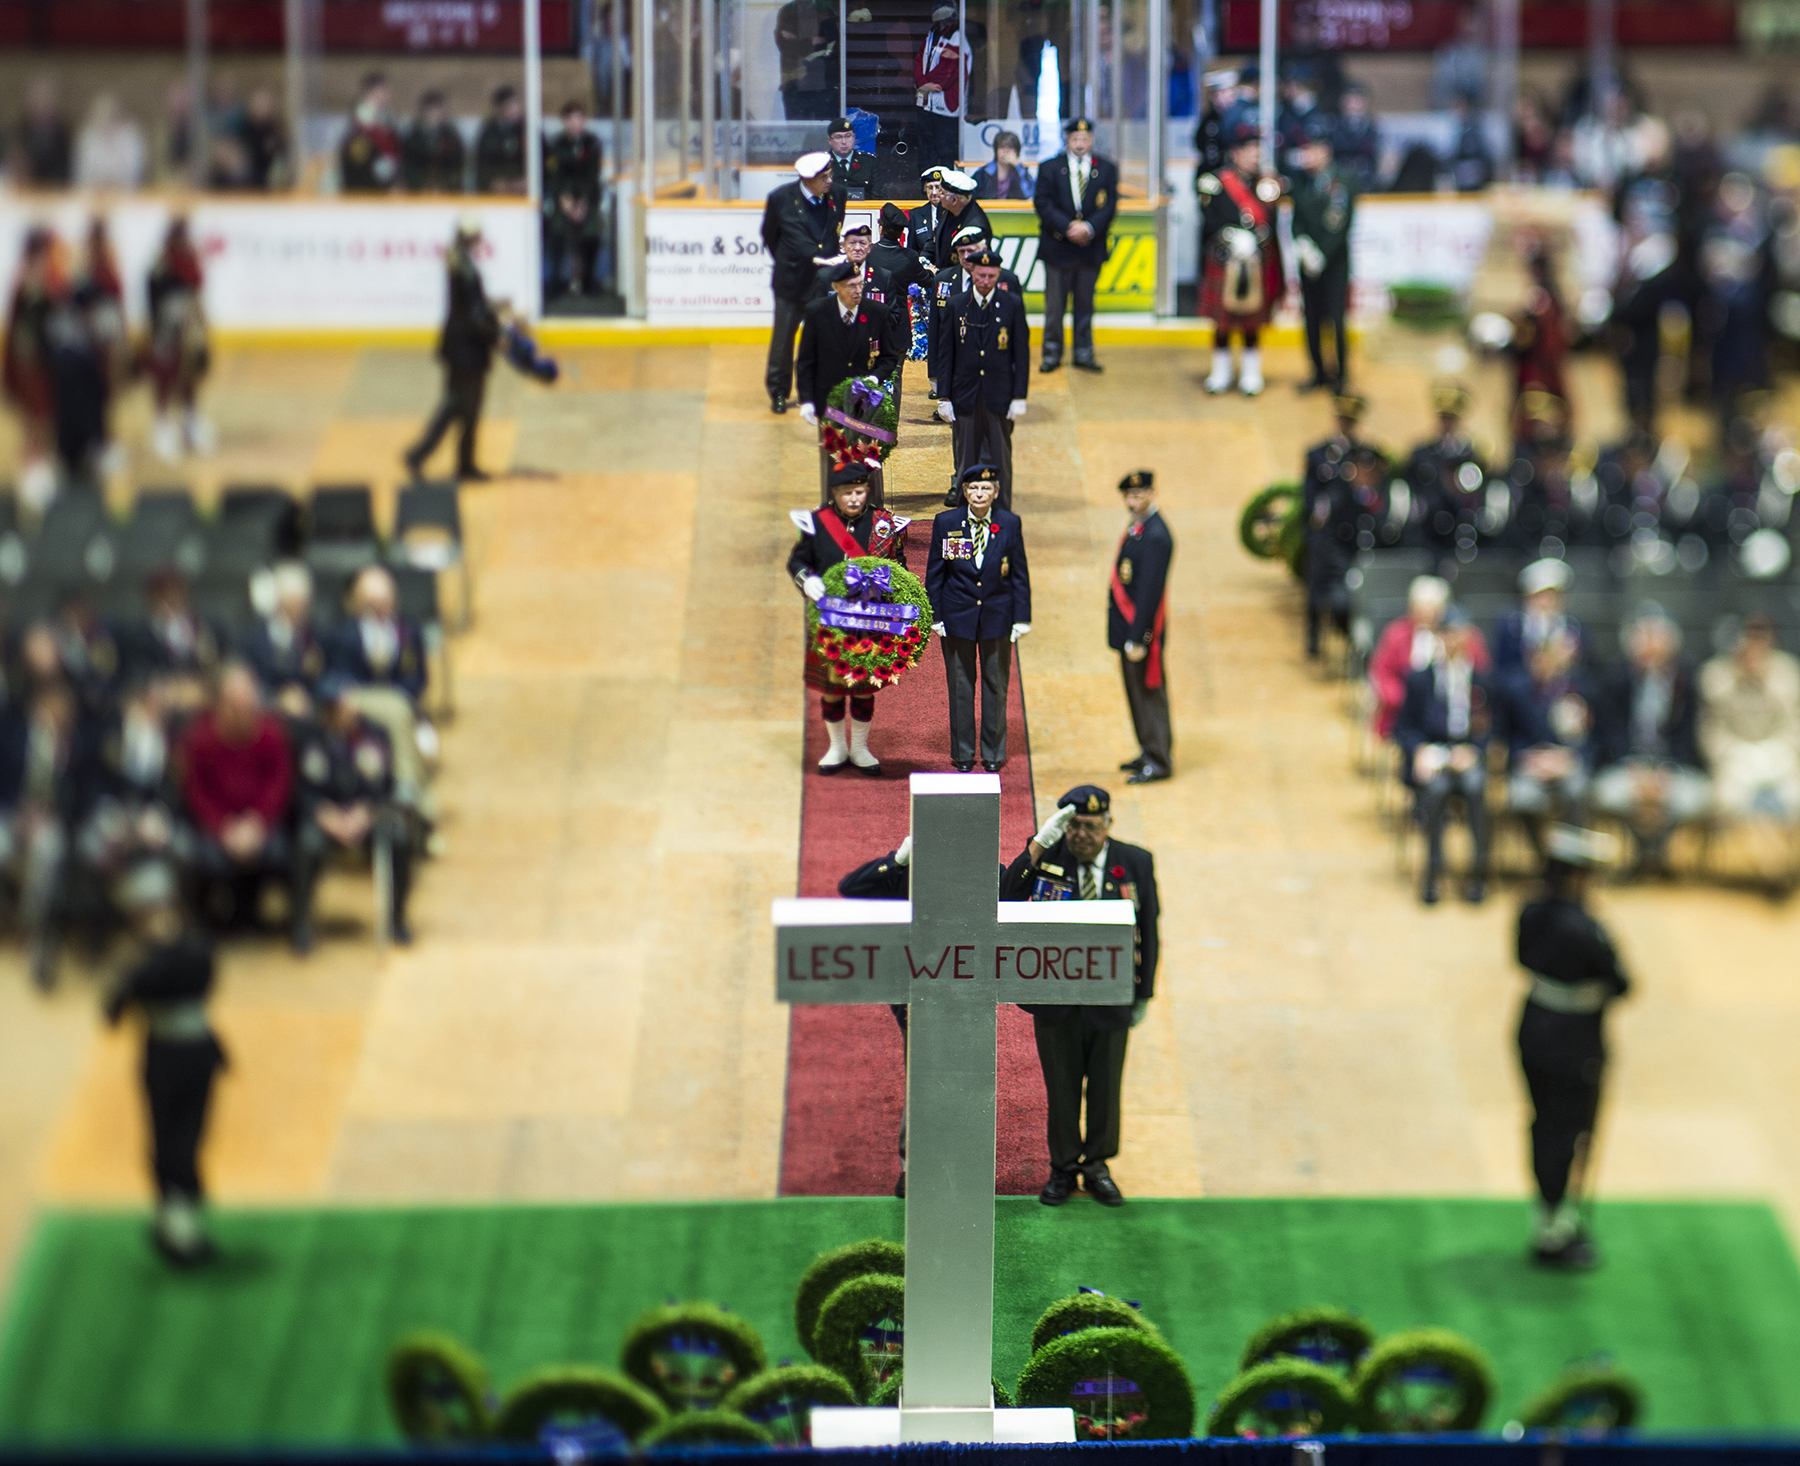 During the 22 Wing North Bay, Ontario, Remembrance Day ceremony, held on November 11, 2015, veterans prepare to place wreaths at the cenotaph in Memorial Gardens Arena in North Bay, Ontario. PHOTO: DND